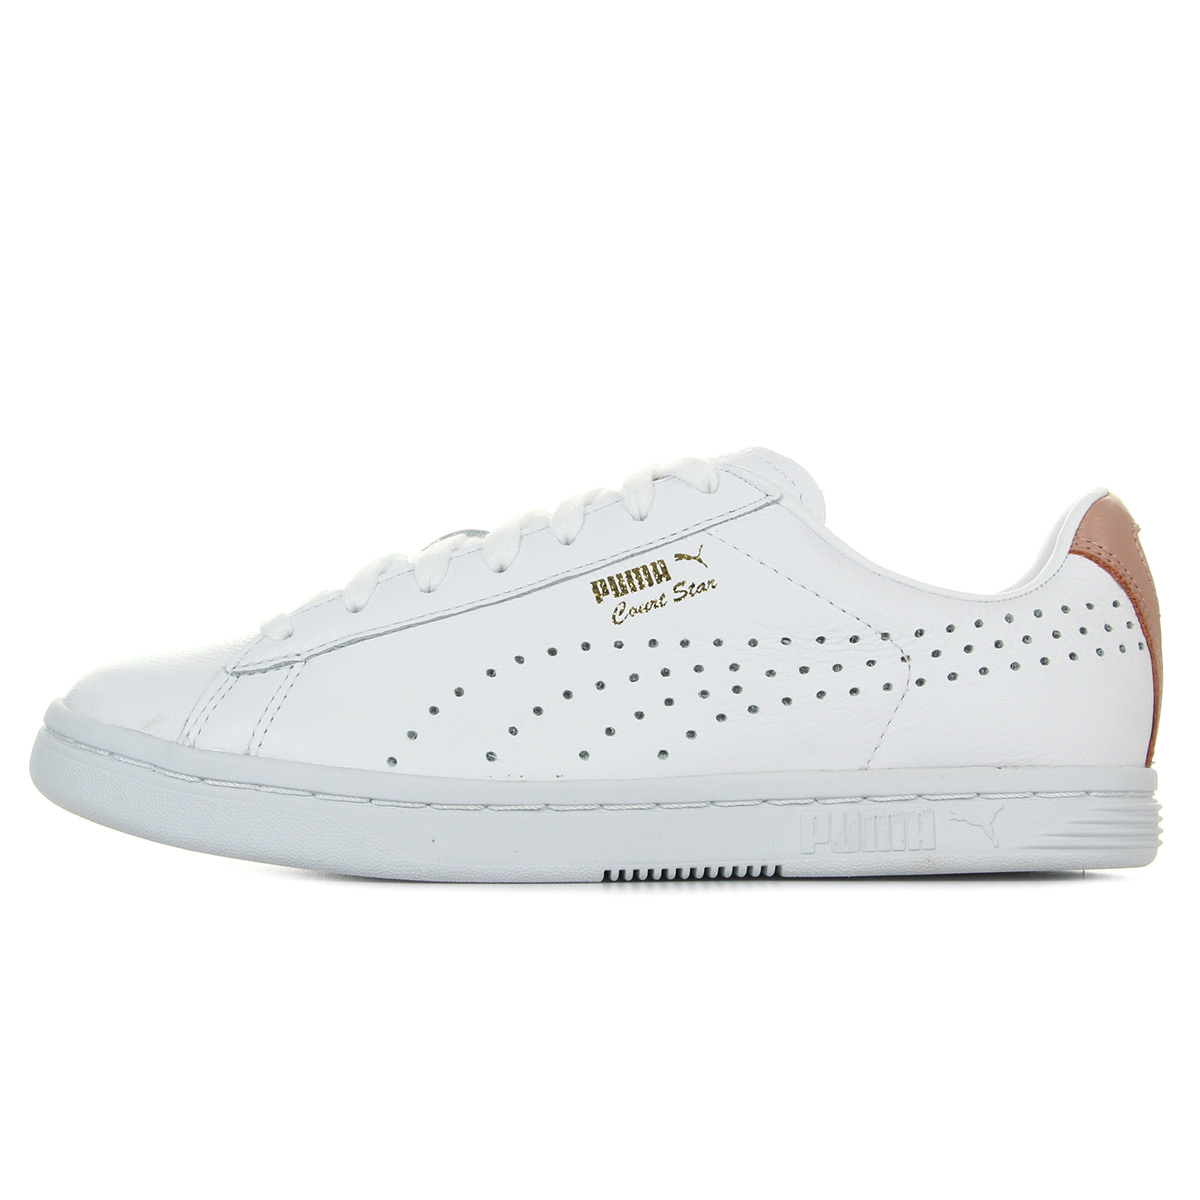 Baskets Puma Court Star NM Wn's